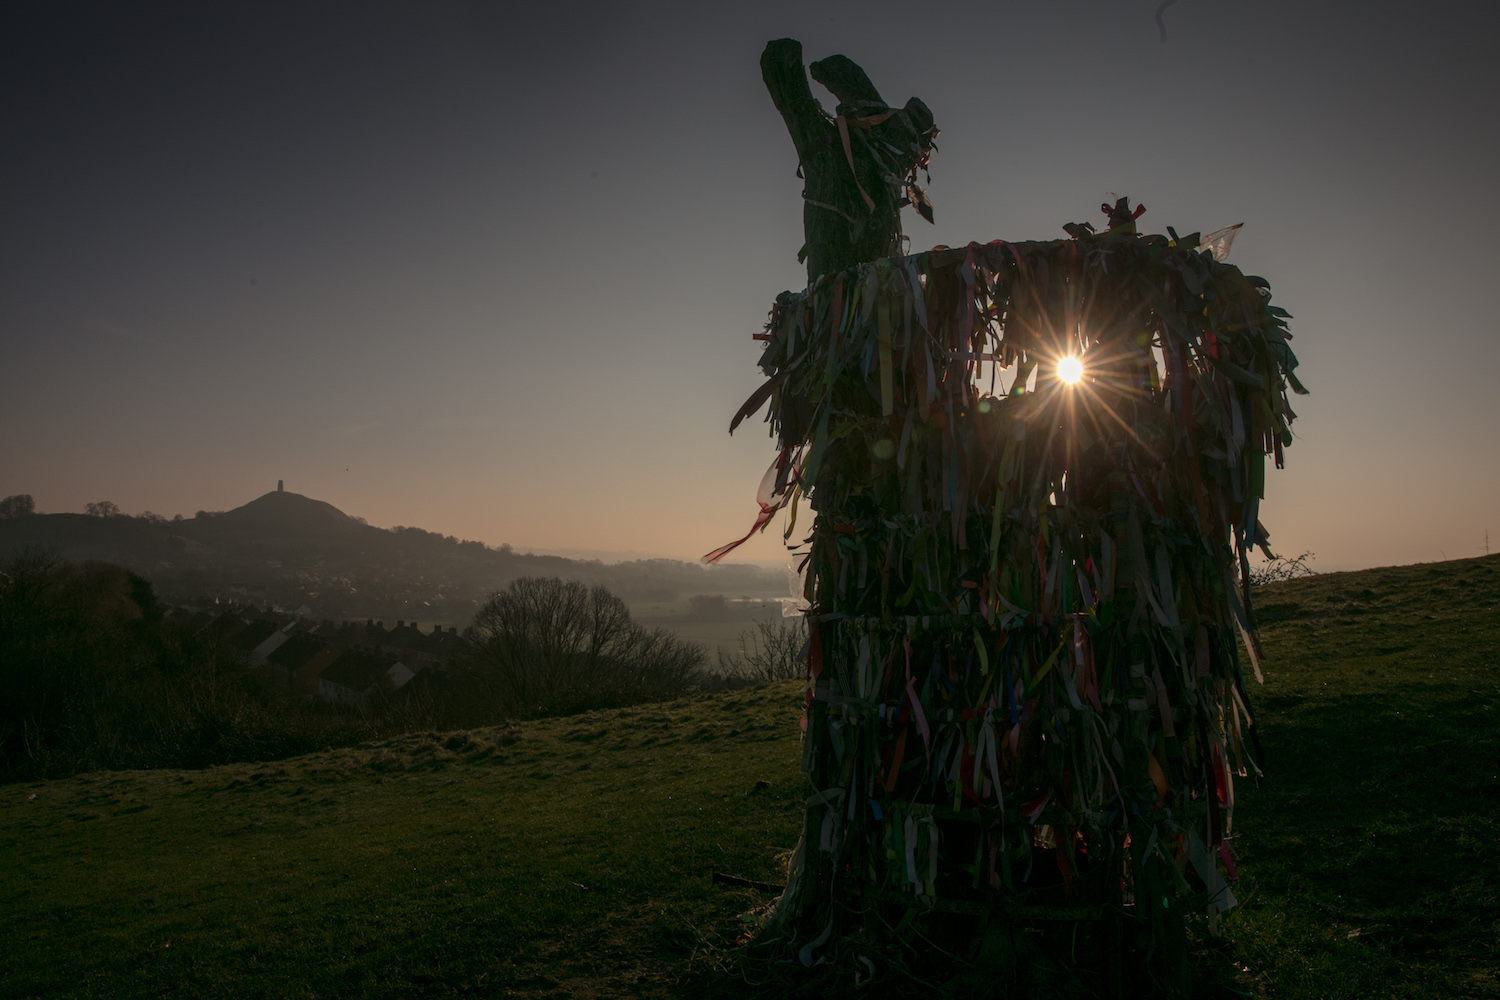 The winter sun rises behind the Holy Tree on Wearyall Hill near Glastonbury in Somerset, England on Feb. 23, 2018. Weather forecasters are warning that a Siberian Arctic blast nicknamed the 'beast from the east' will envelop the UK next week in what could be the coldest end to the British winter for five years, will causing temperatures to plunge below zero from Sunday night and bringing the risk of significant snowfall to London and the east of England.  (Photo by Matt Cardy/Getty Images)